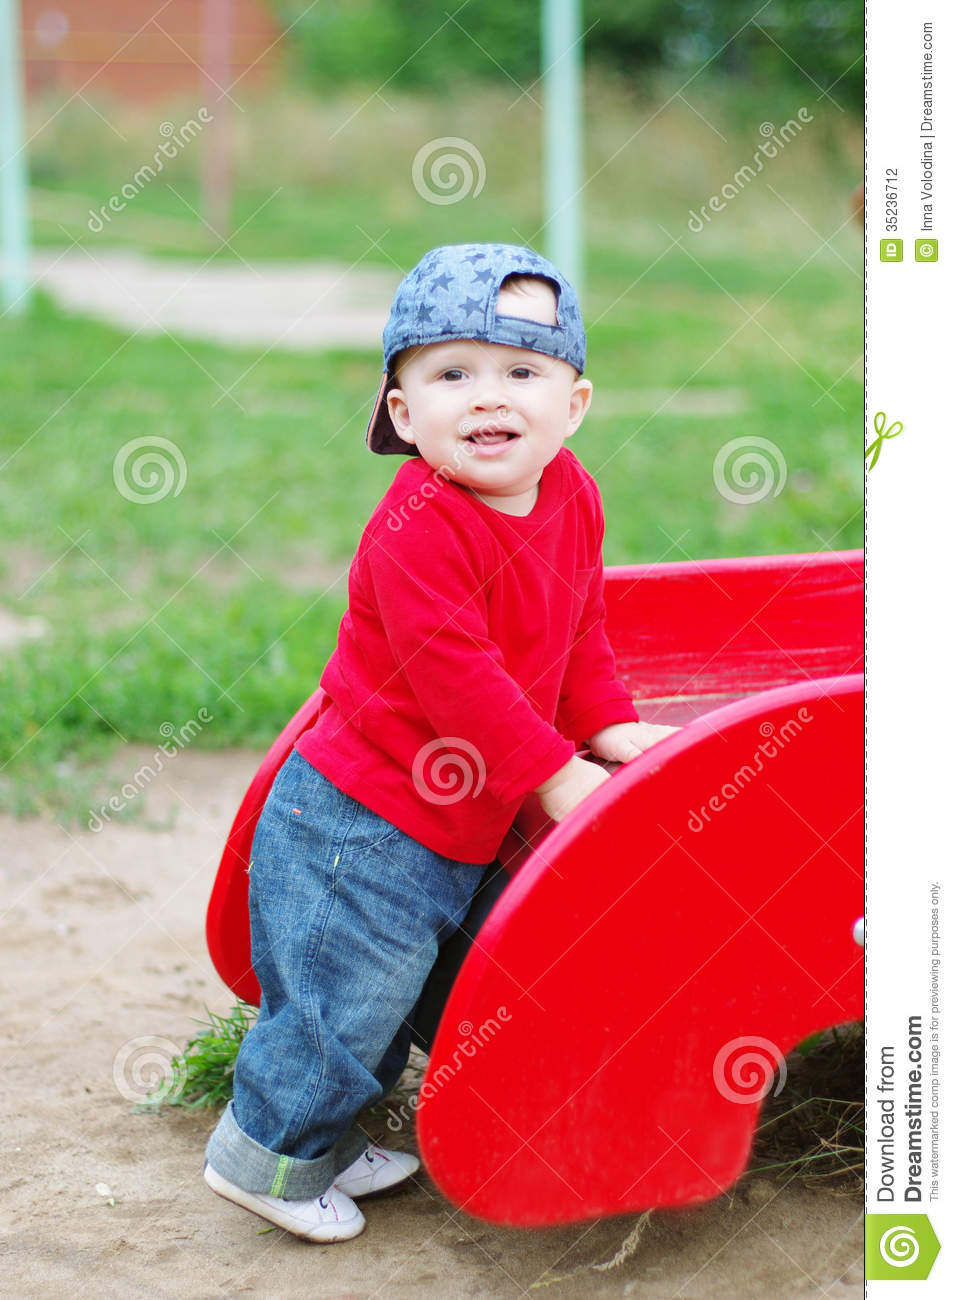 Nice Baby Boy Age Of 10 Months On Playground In Summer